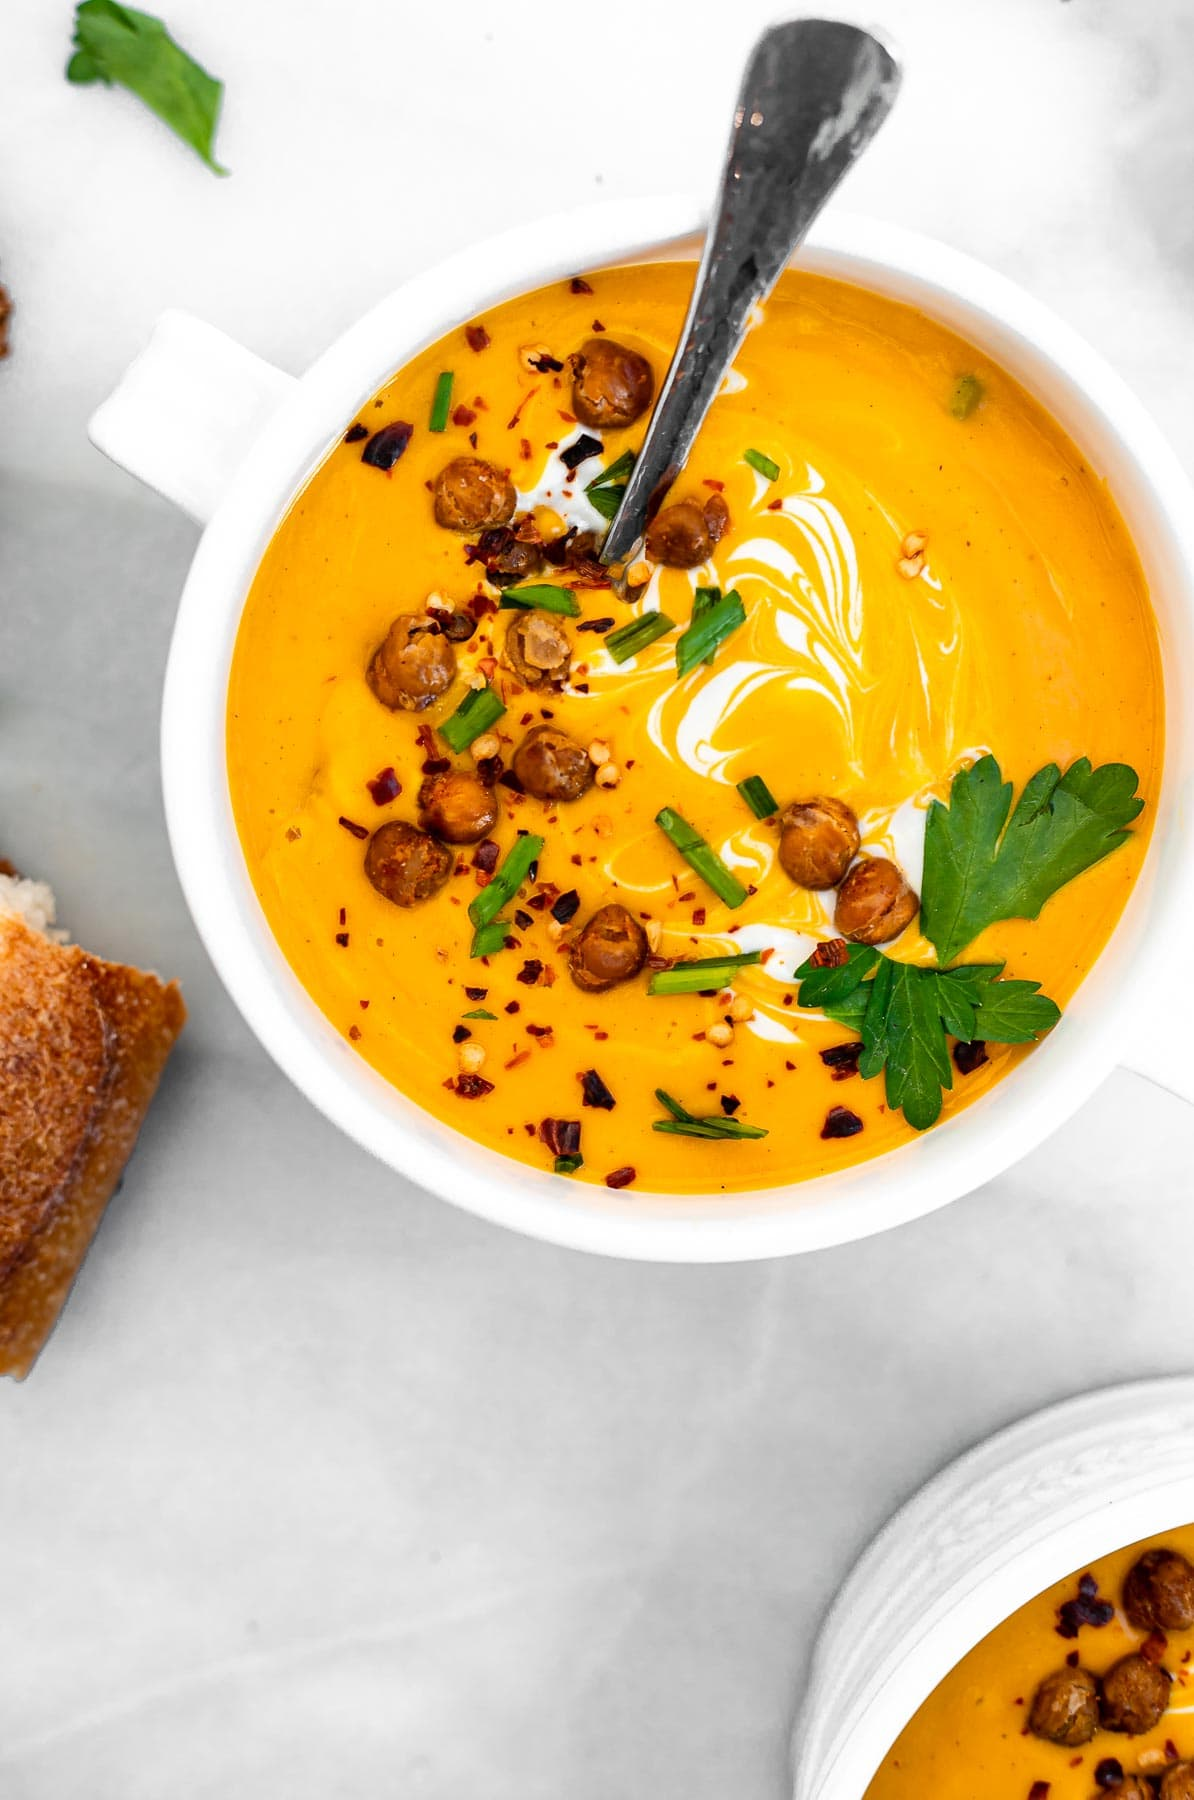 Vegan butternut squash soup with crispy chickpeas on top.